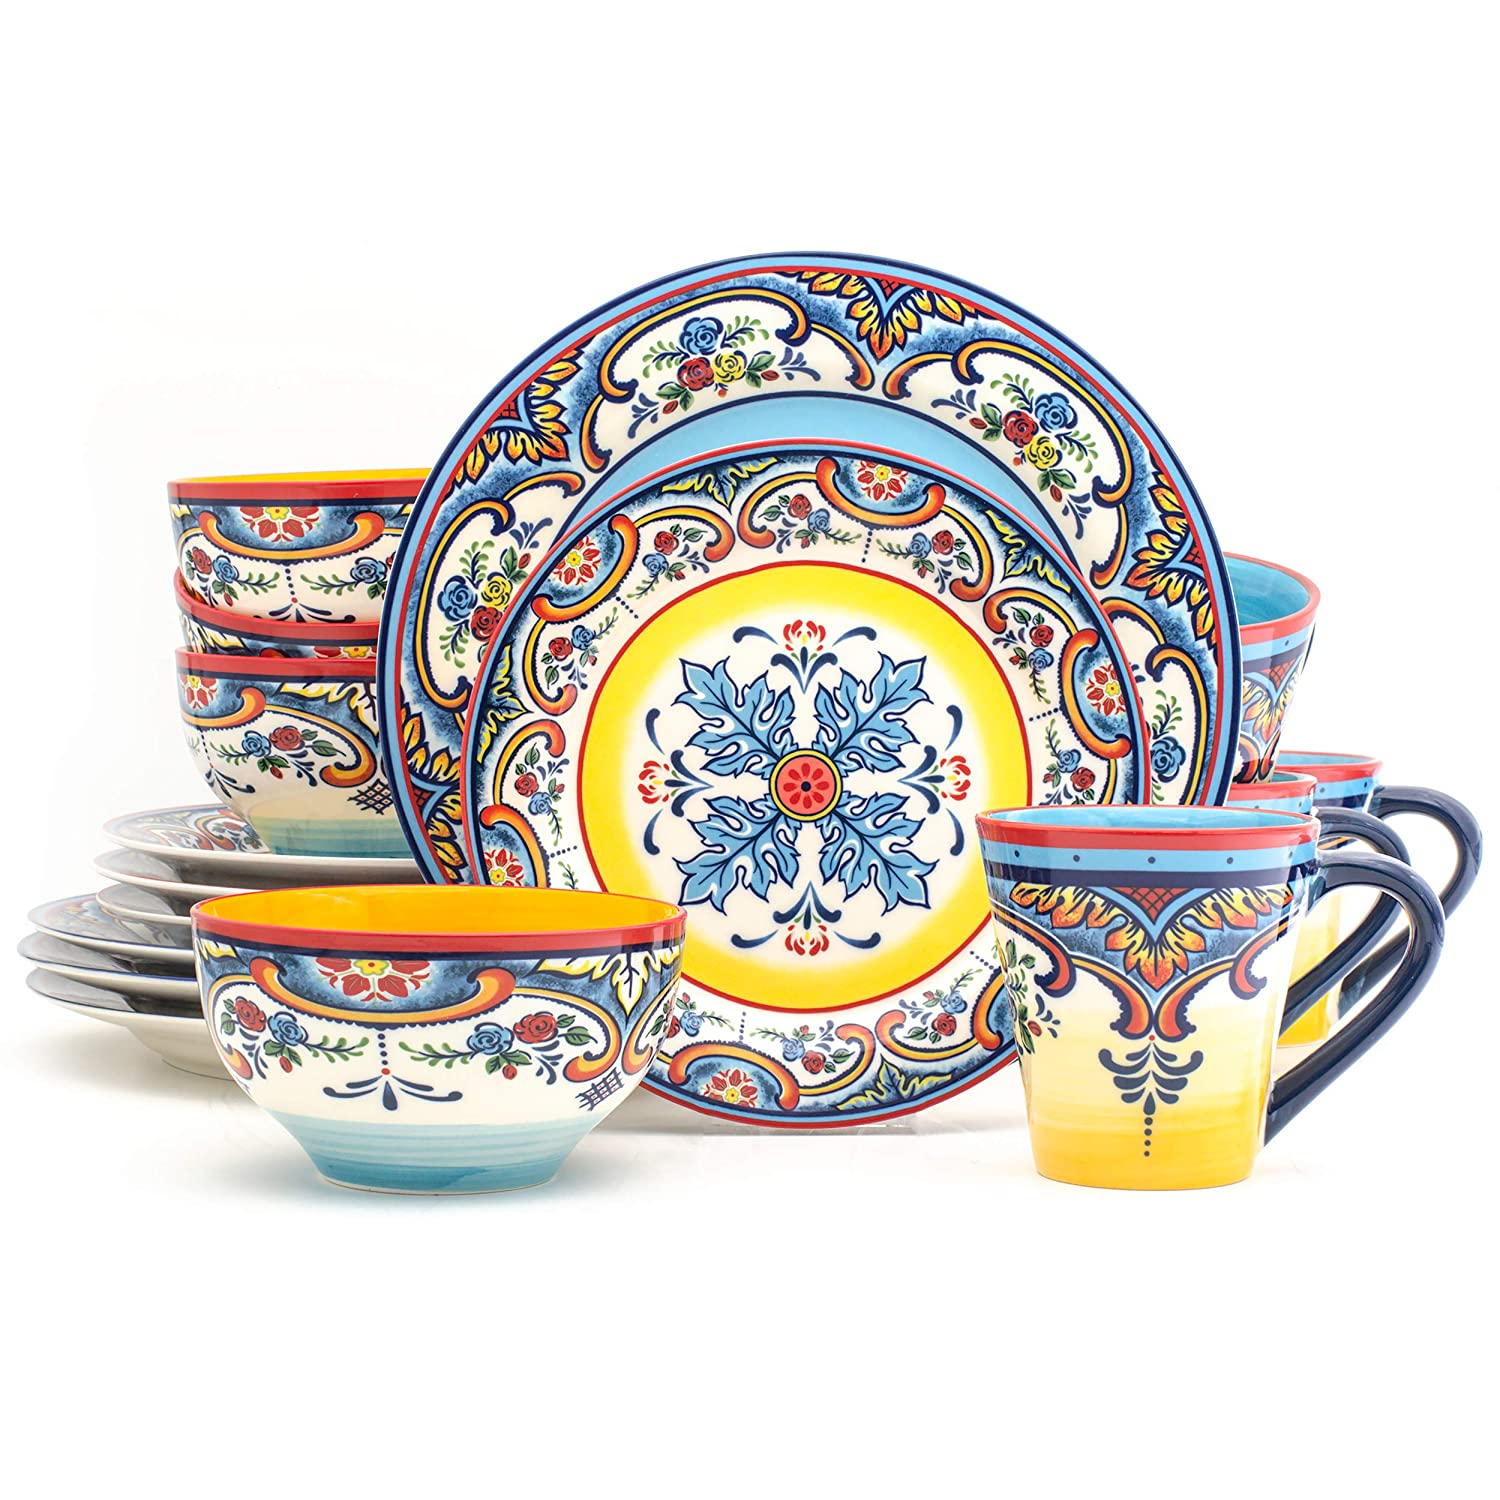 Euro Ceramica Zanzibar Collection Vibrant 16 Piece Oven Safe Stoneware Dinnerware Set, Service For 4, Spanish Floral Design, Multicolor